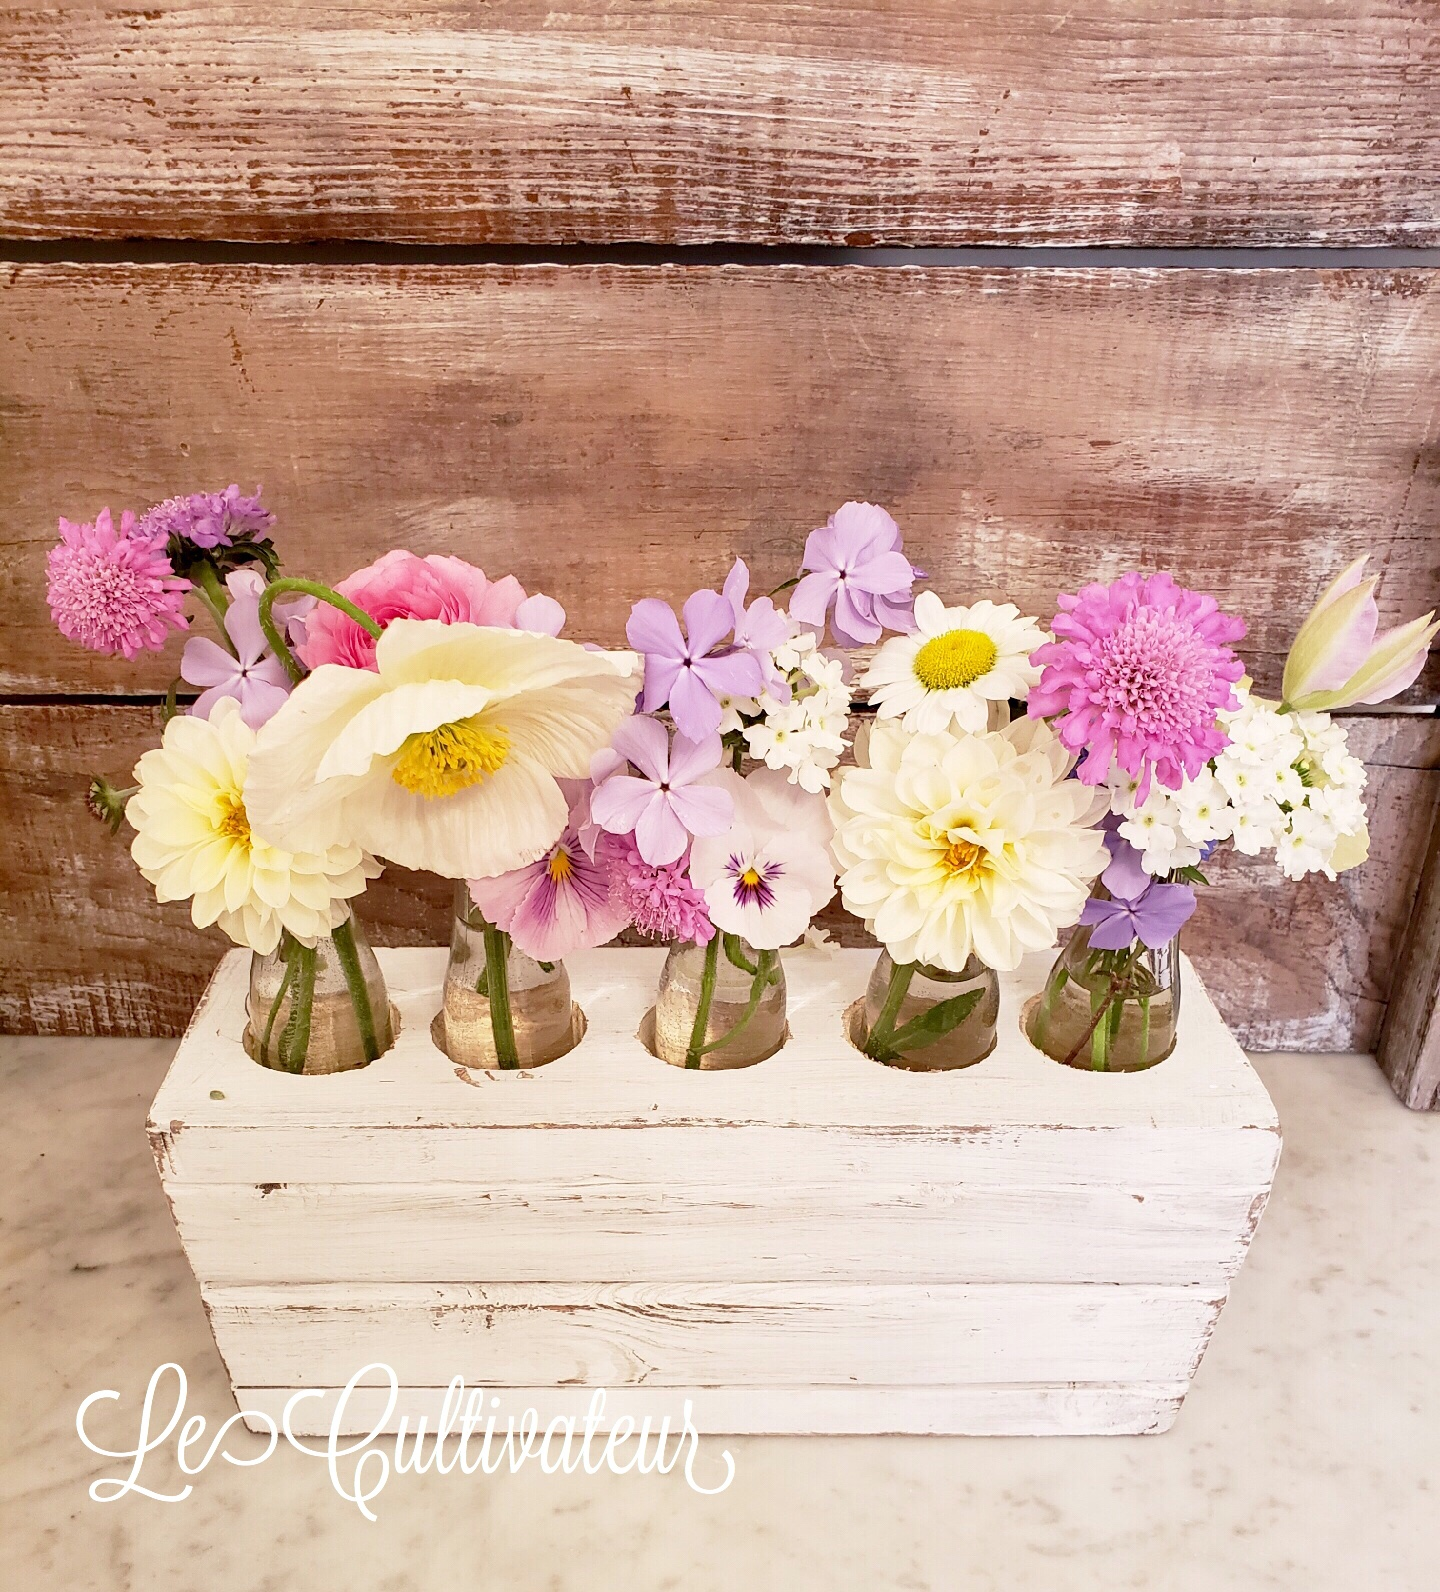 DIY Wooden Bud Vase Holder | Le Cultivateur